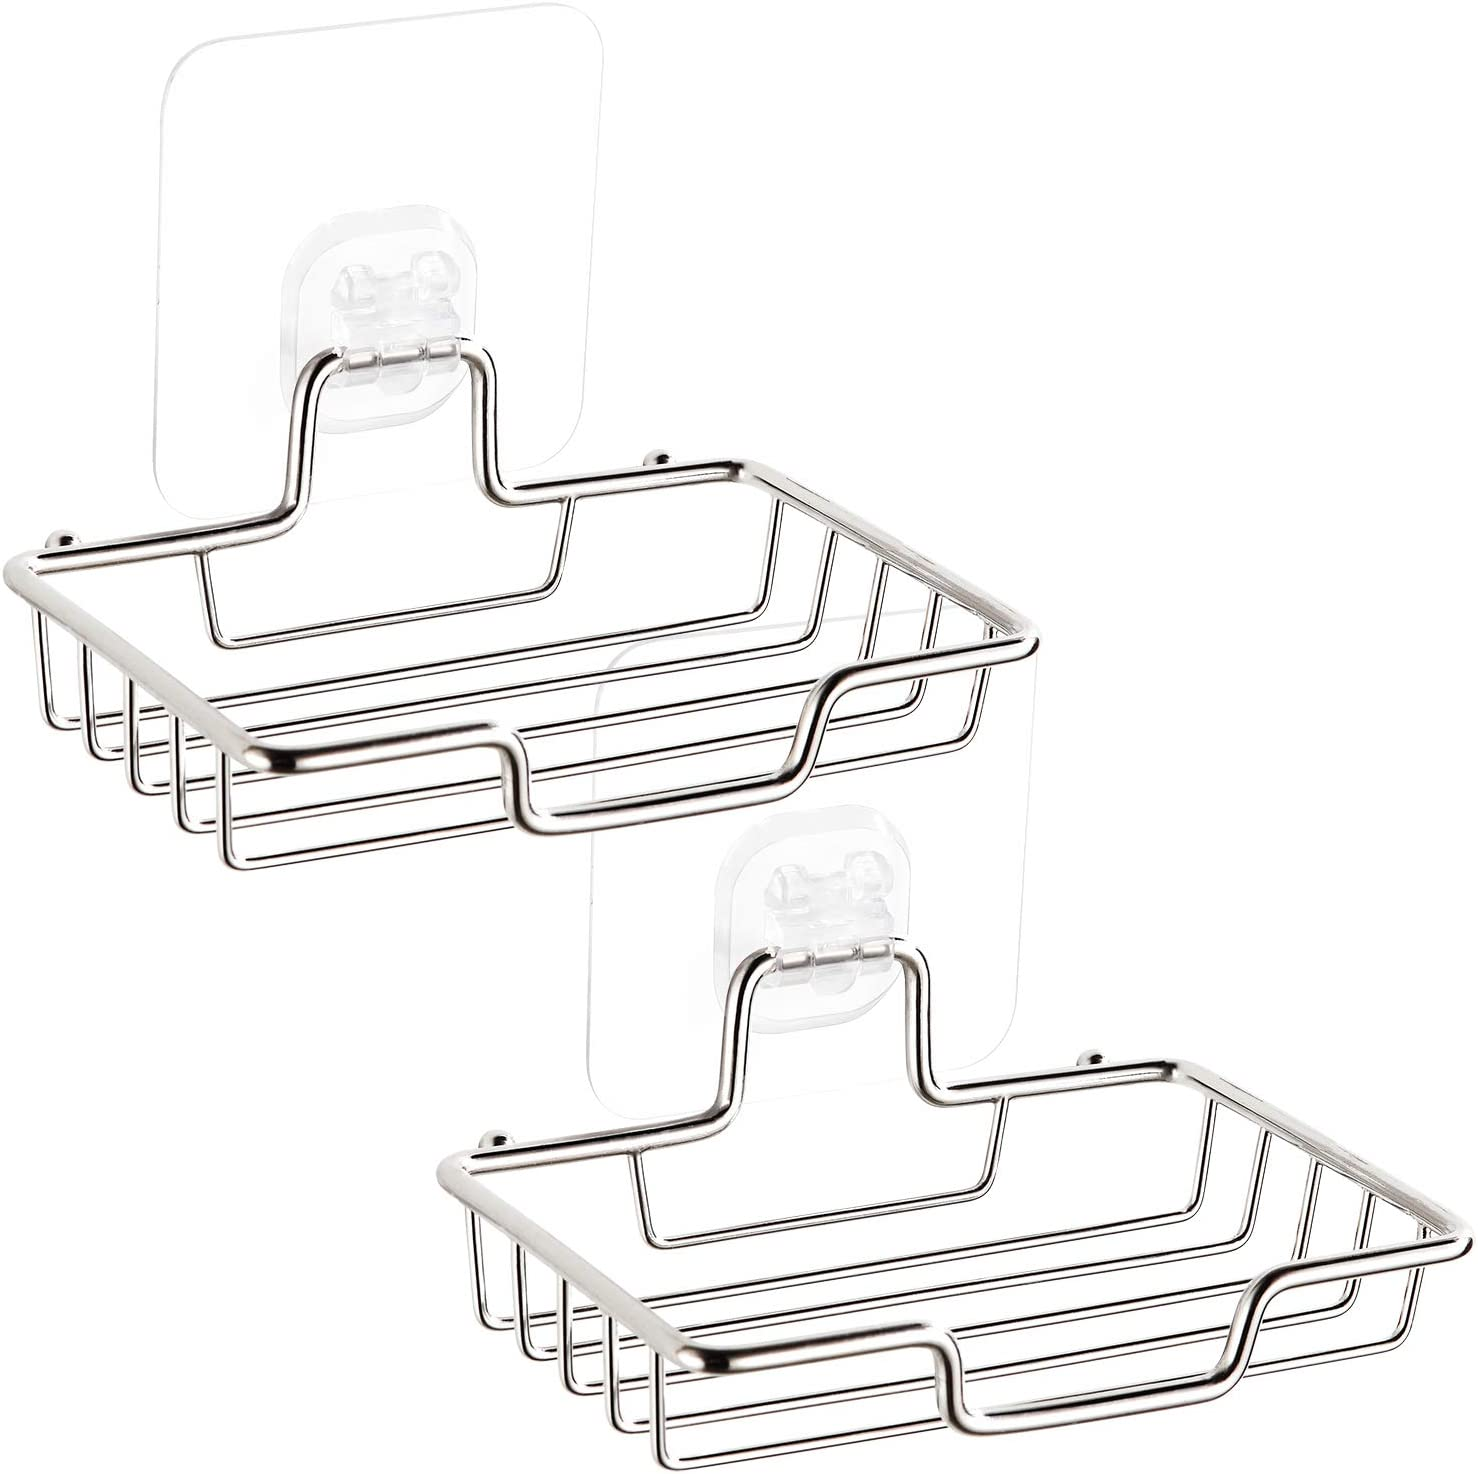 GUNMIN Adhesive Soap Dish Sponge Holder for Bathroom Shower Kitchen, No Drilling Wall Mounted Soap Saver, Stainless Steel, 2 Pack (D-3002A)